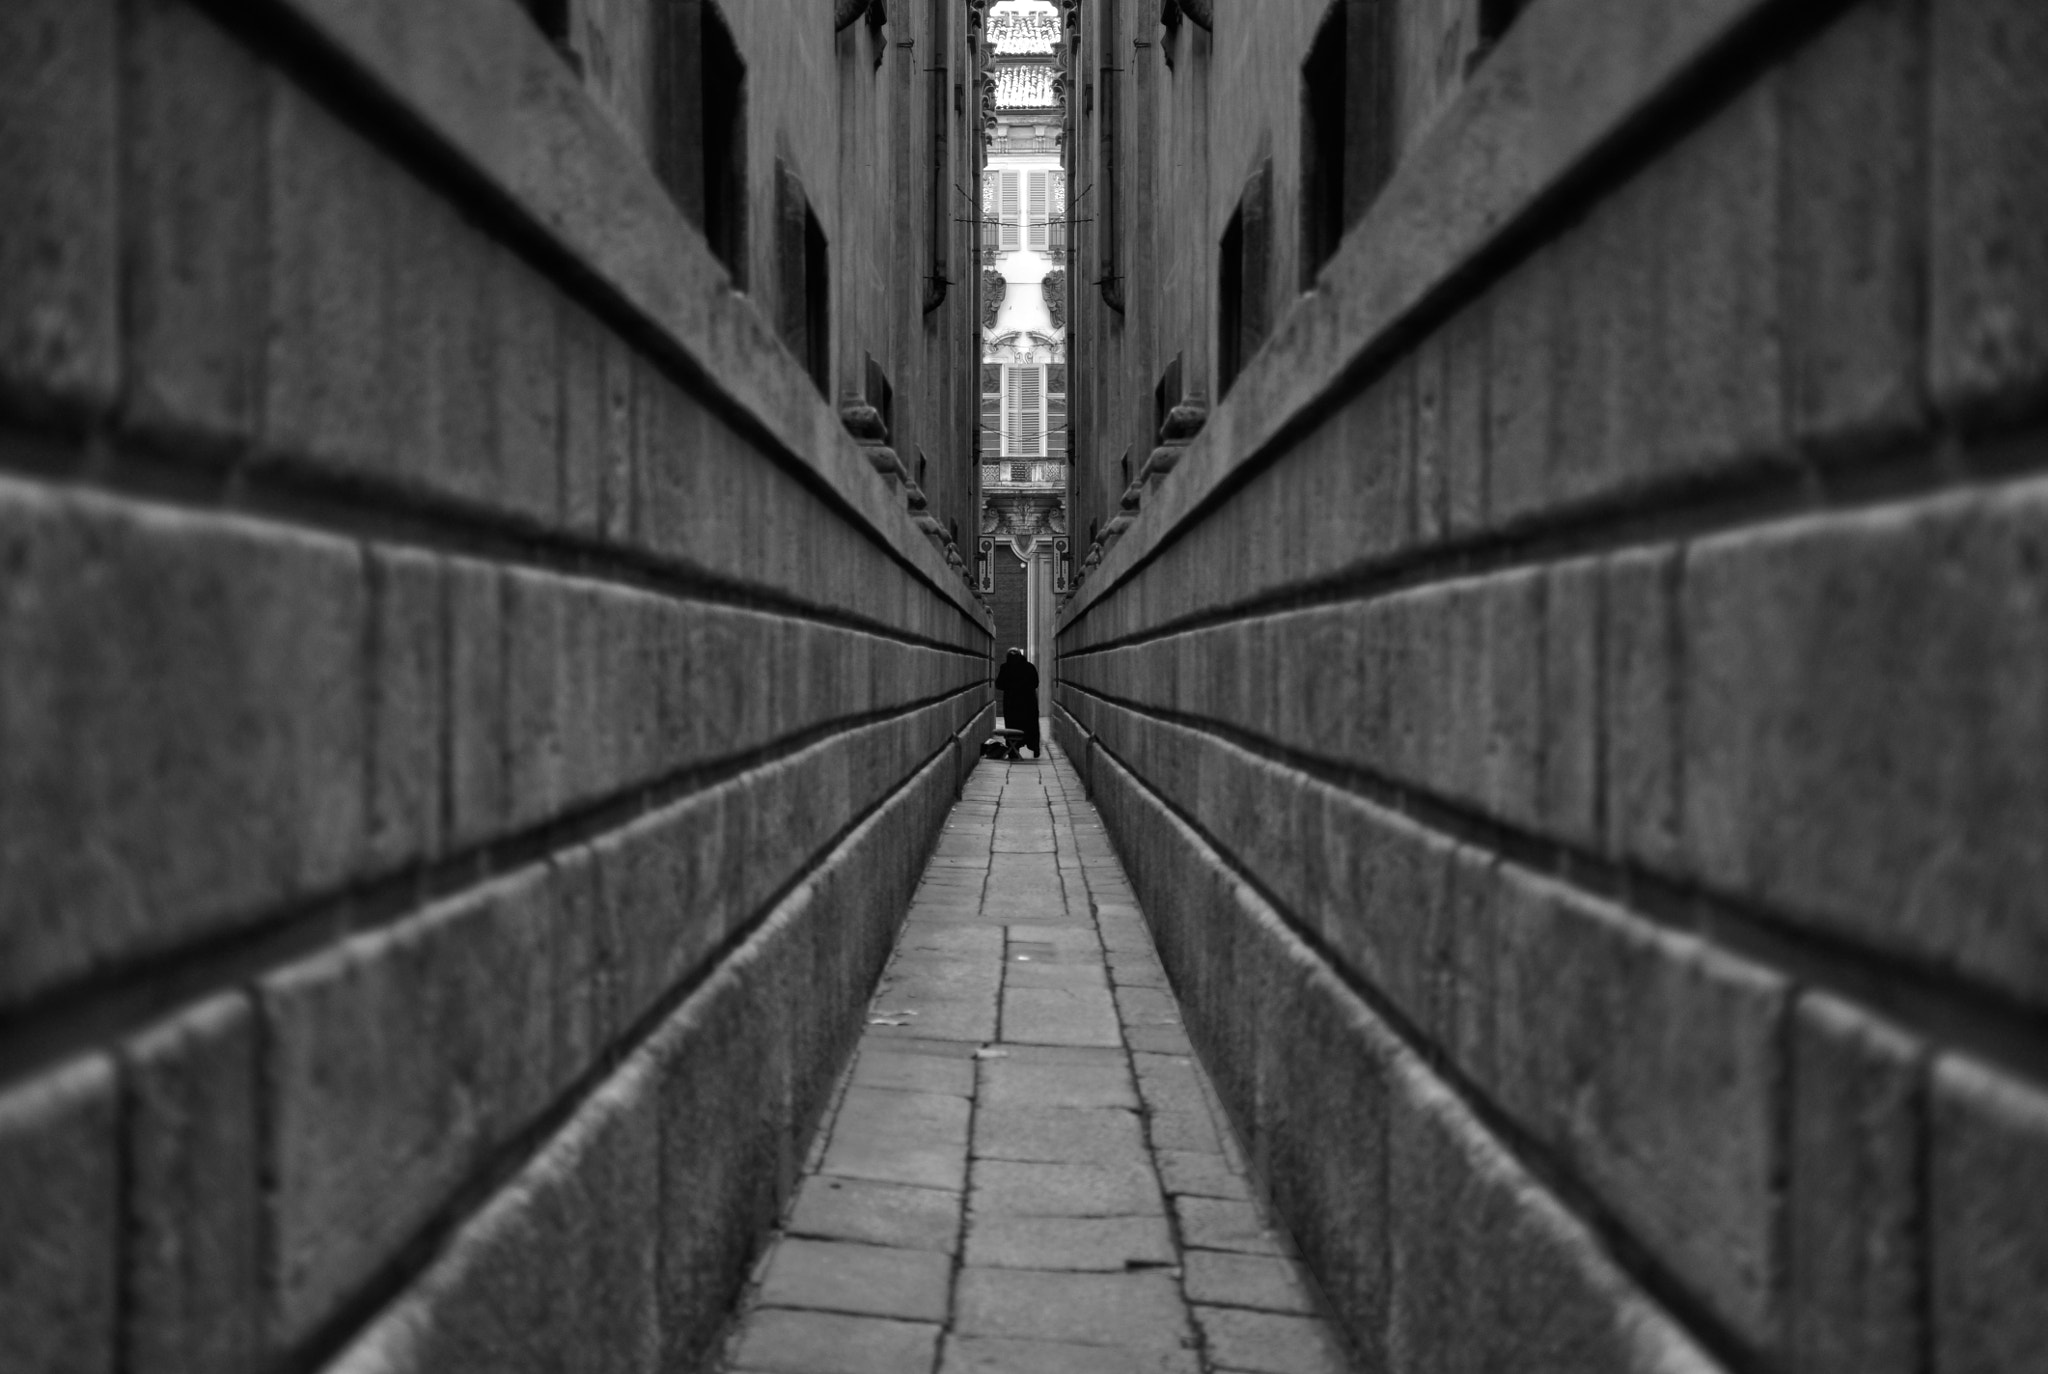 Photograph origin of symmetry by Francesco Iannuzzi on 500px